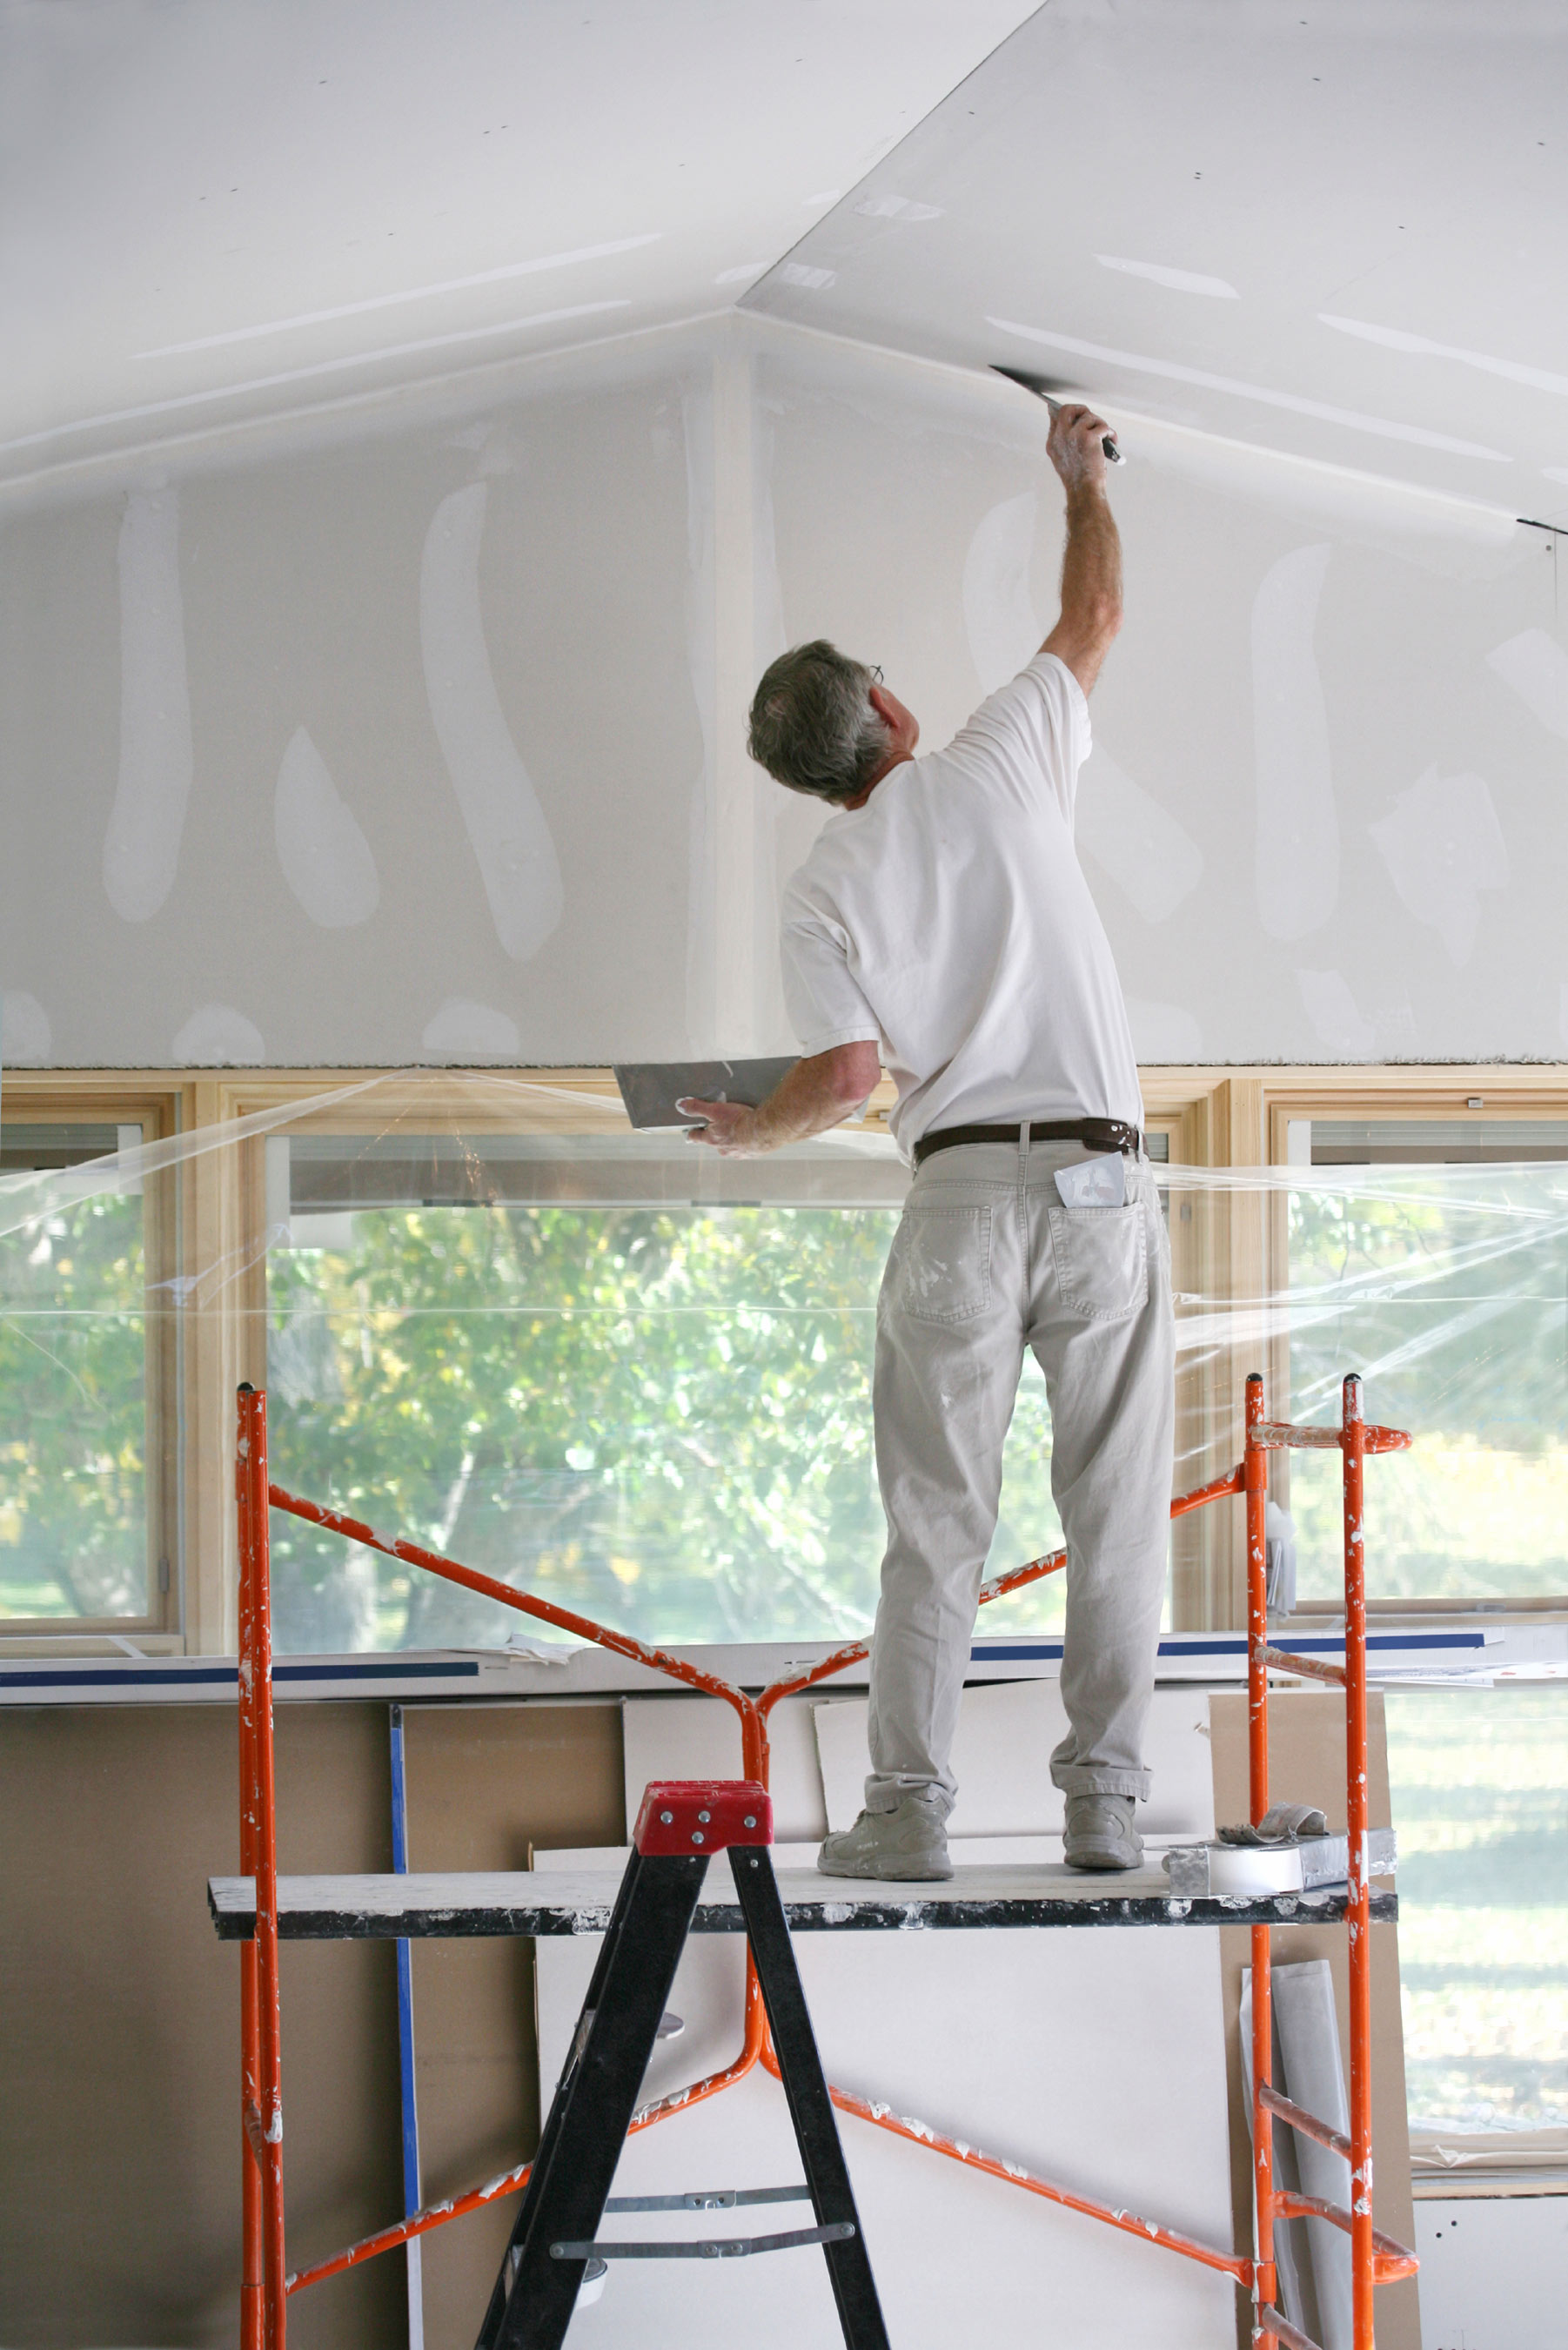 Have you or your contractor recently used Drywall in your home construction or renovation? A pending class action claims that some Drywall manufacturers may have conspired to fix prices.